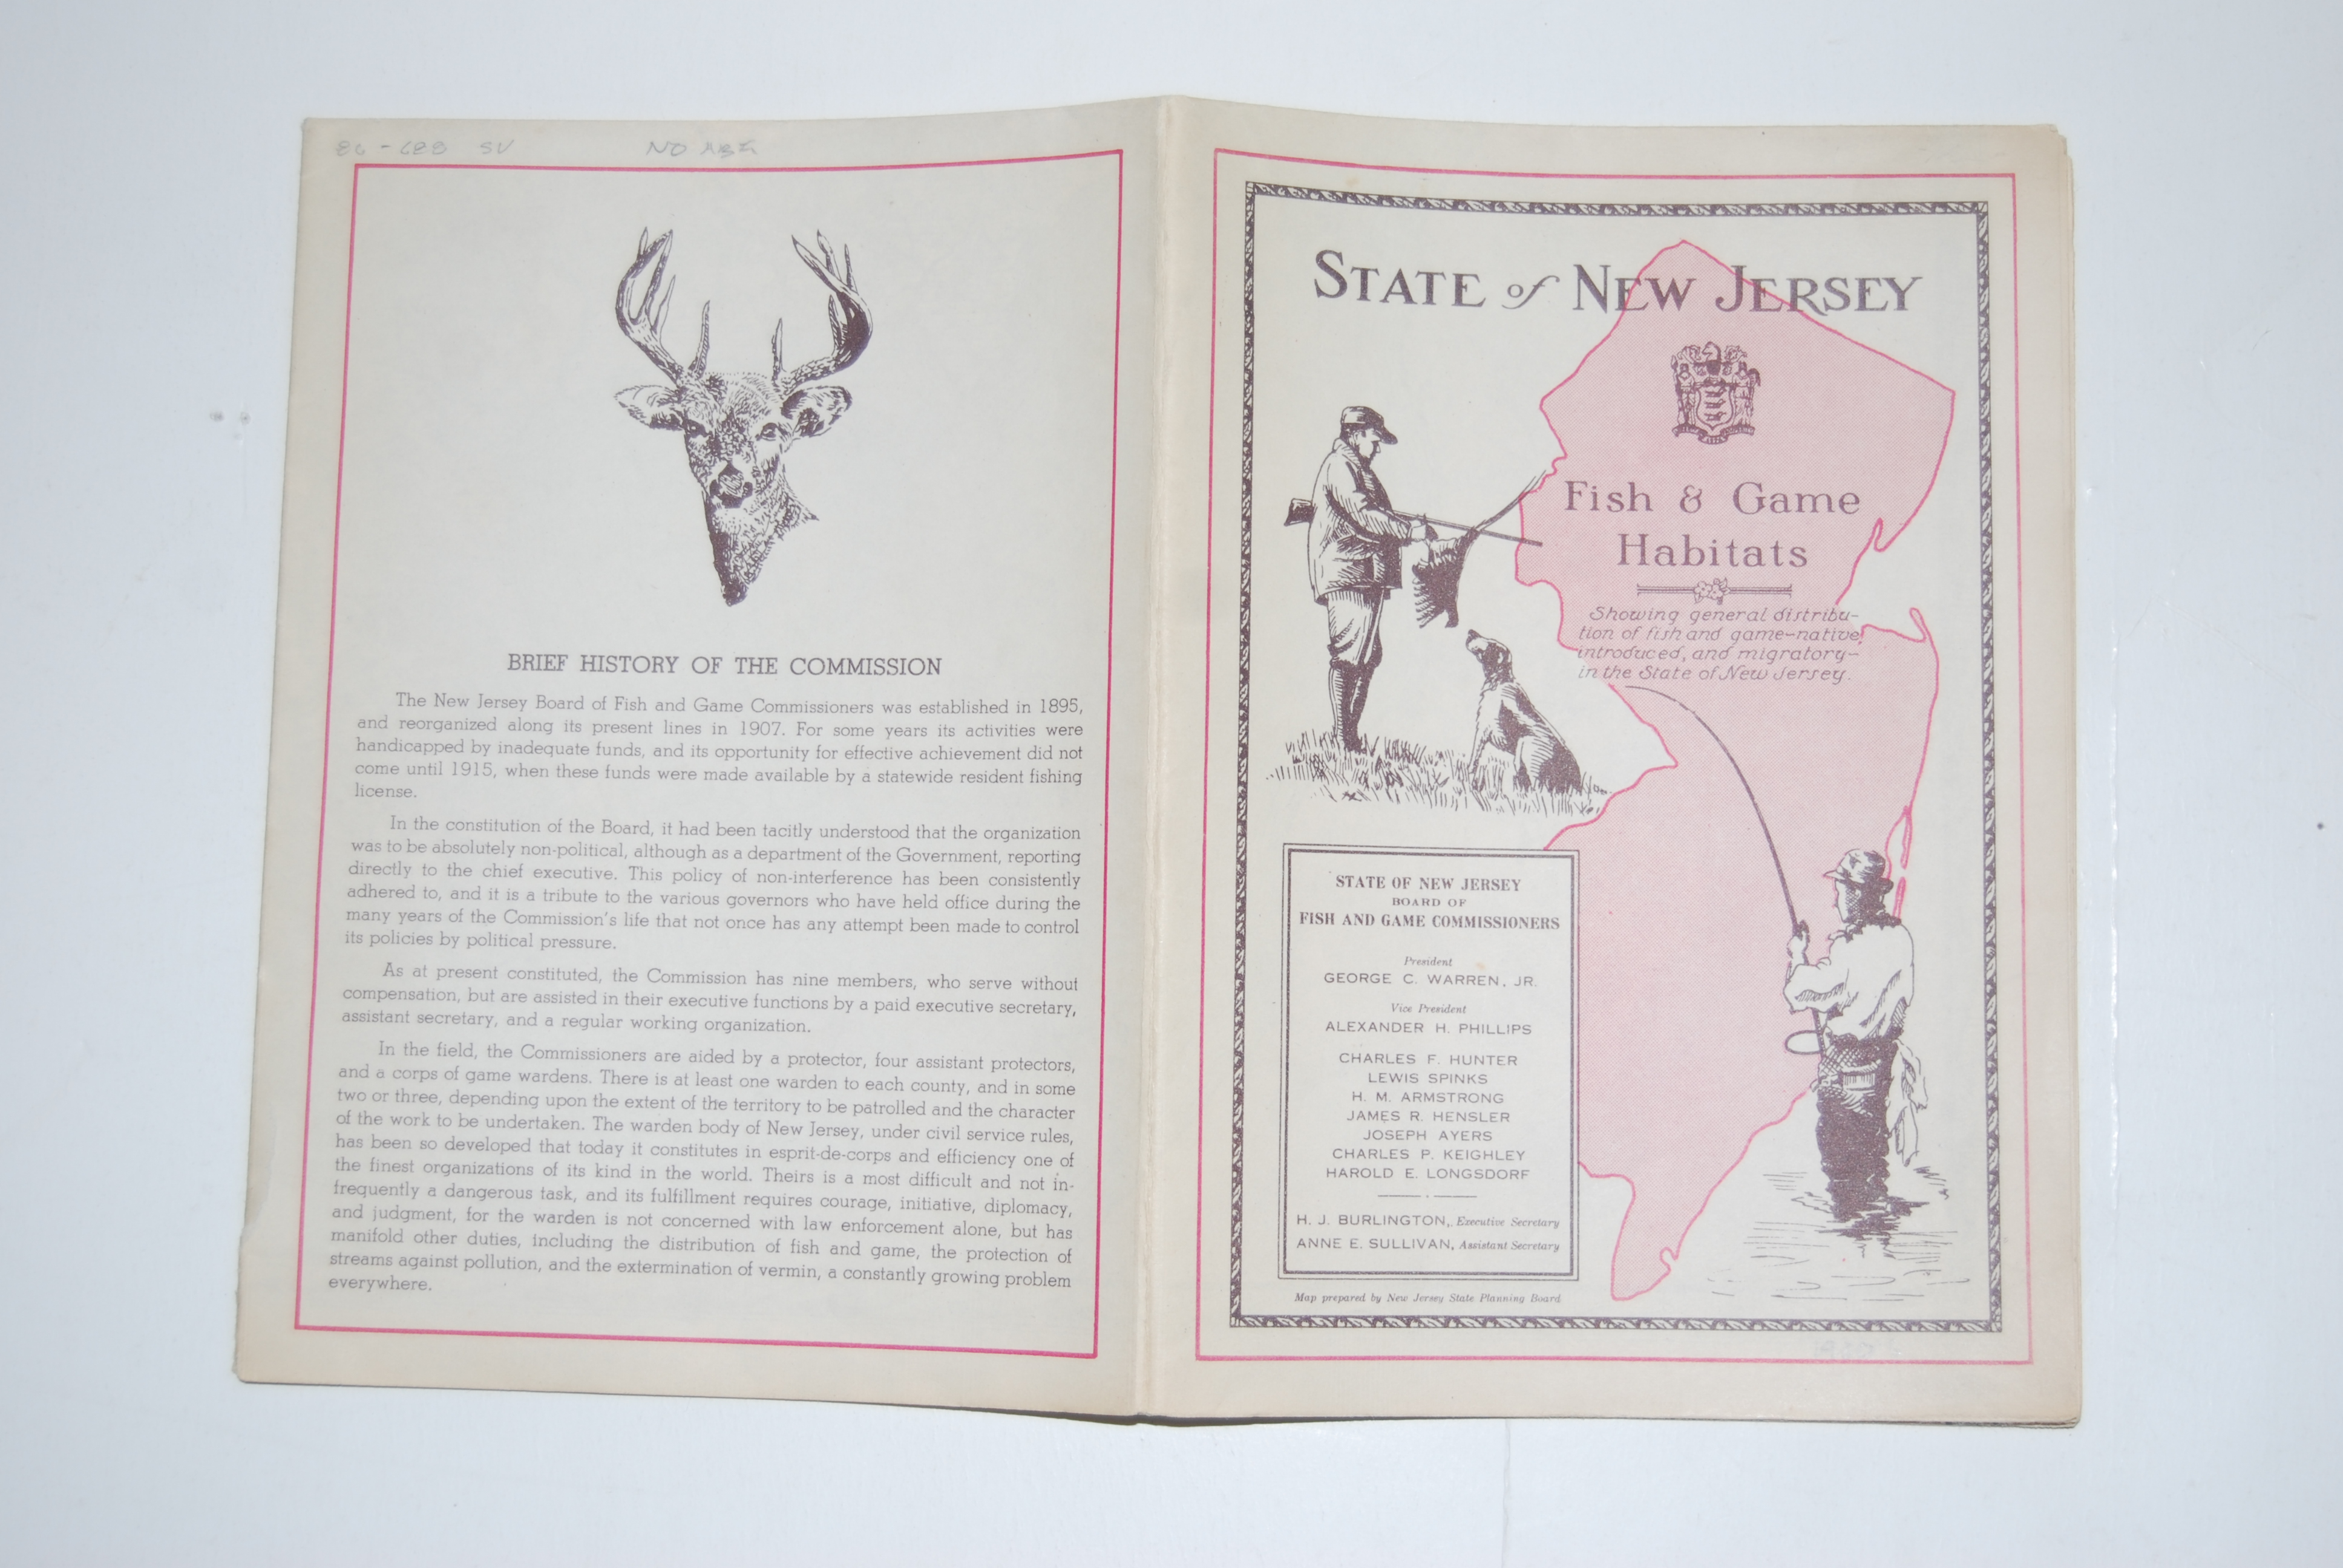 Image for STATE OF NEW JERSEY FISH & GAME HABITATS. Trenton: New Jersey State Fish and Game Commission. 16 p. + map. Circa 1930's. 8 in. high x 5 1/2 in. fold out pamphlet; Opens to 39 in. high X 22 in. Paper Fold-Out.